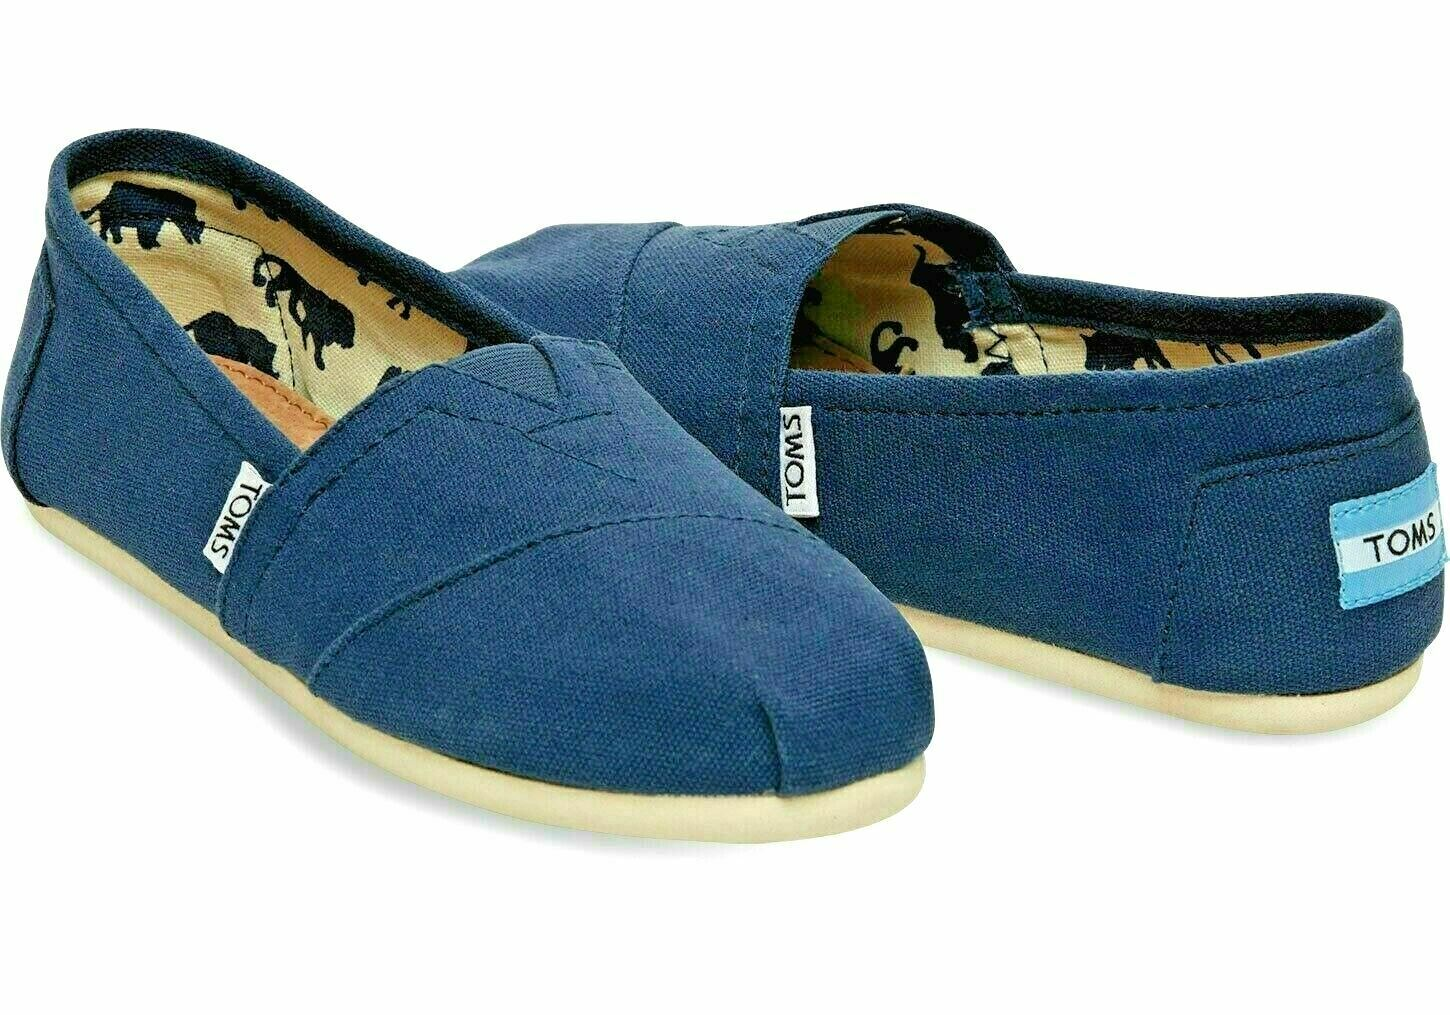 Toms Men's Classics Canvas Shoes Slip On Comfortable Original NEW WITHOUT BOX 1